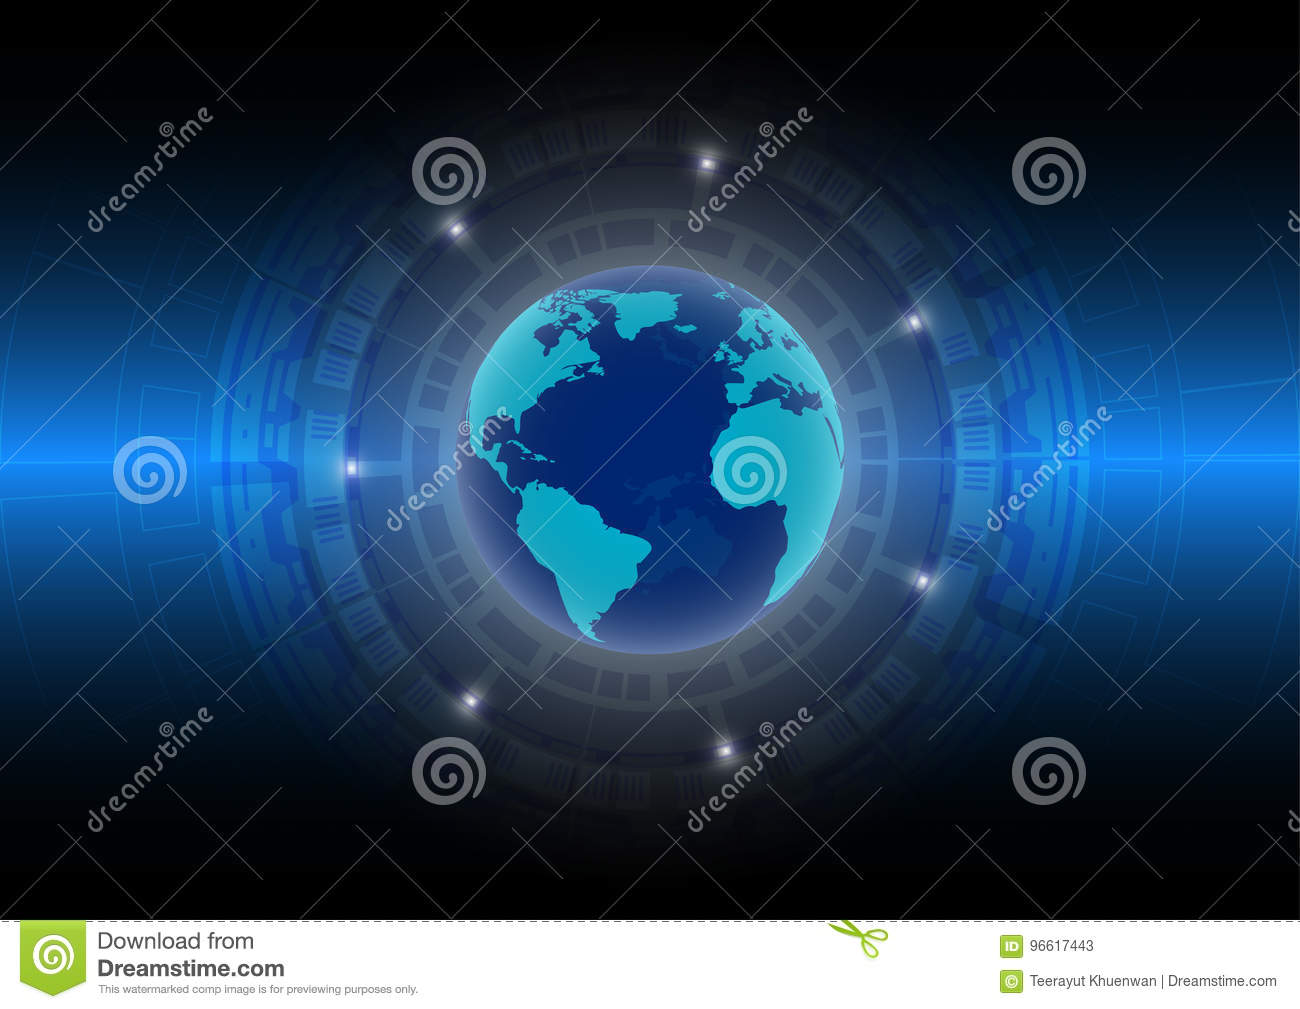 Abstract technology background World in the digital age; future technology concept